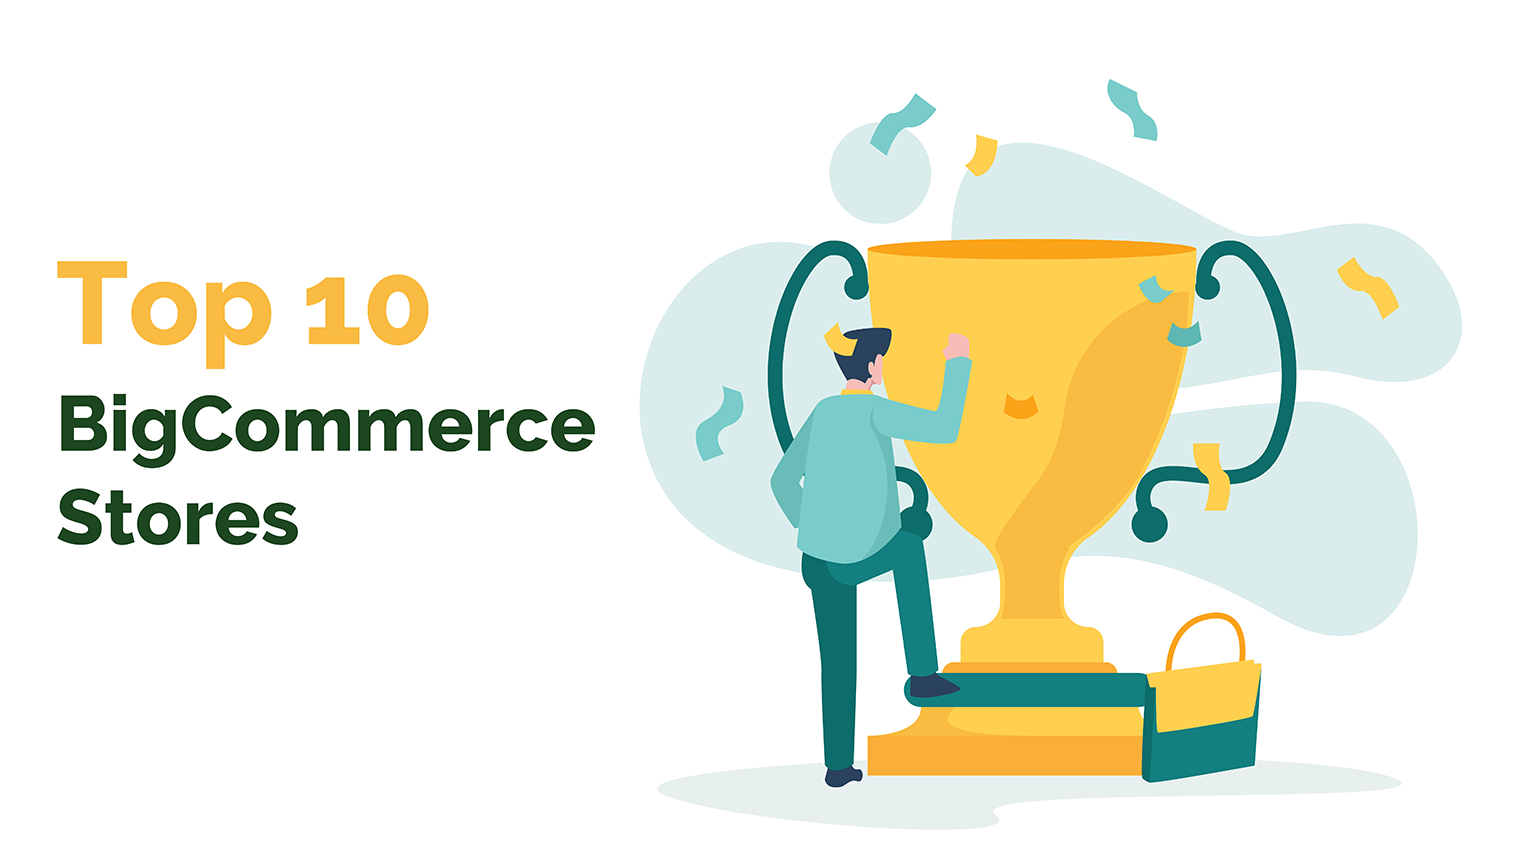 Top 10 BigCommerce Stores